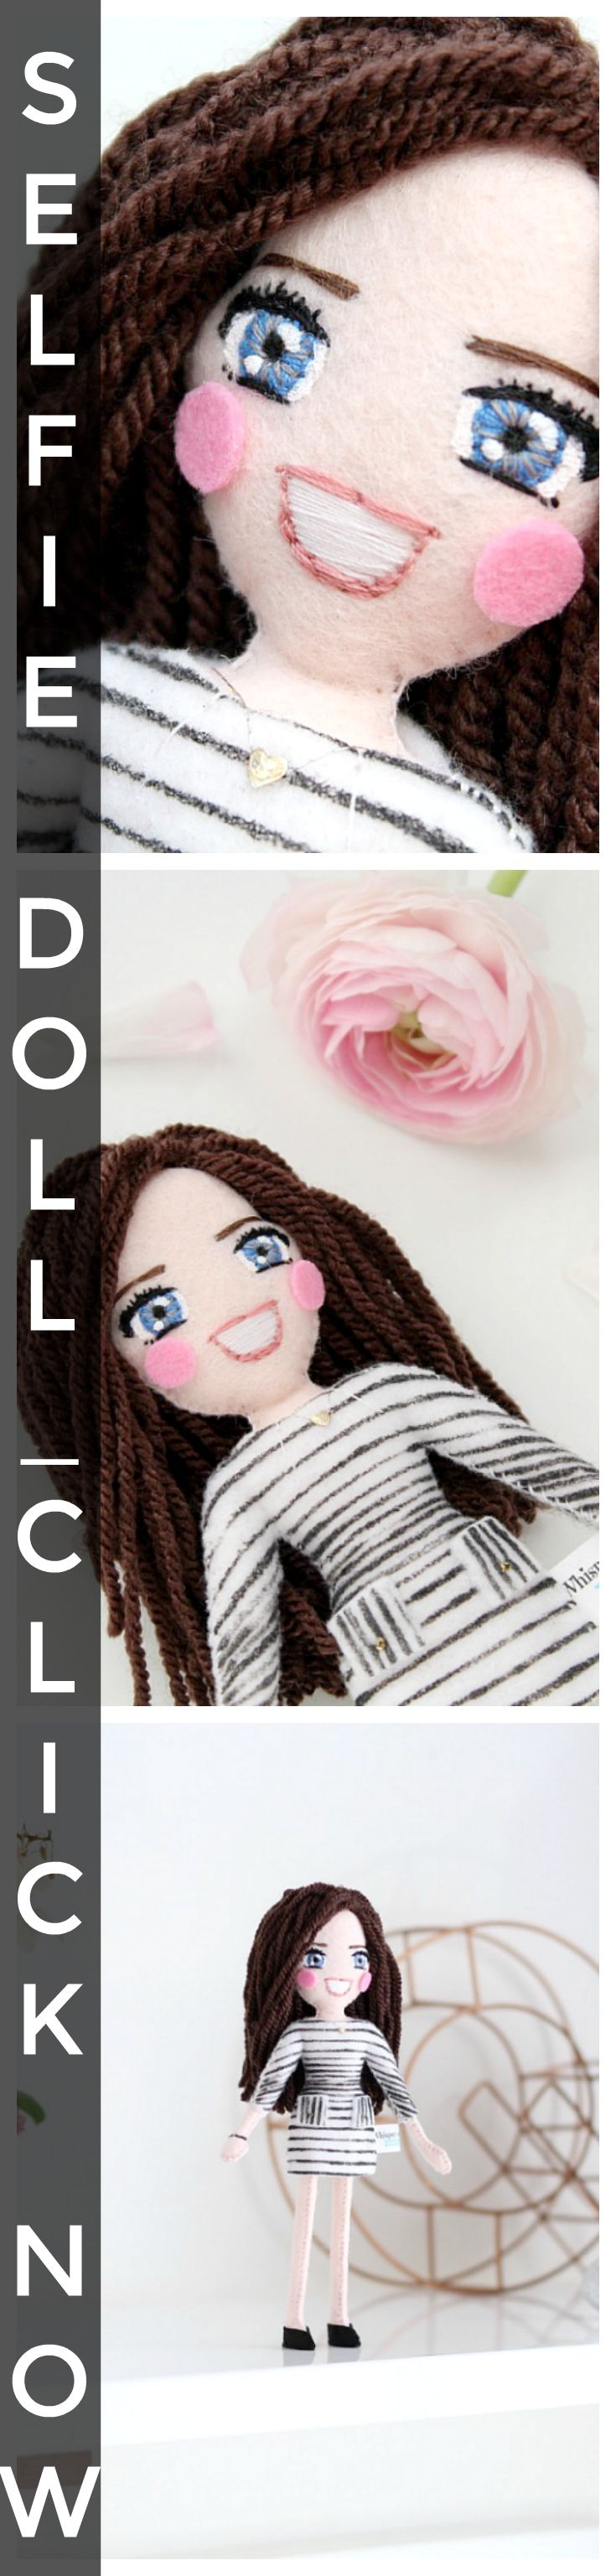 personalised selfie art dolls capture the unique you in more than just a 'click'.  Mini versions of individual you, hand-stitched and hand-painted, to keep forever or to gift.  Colourful, fun, creative, and definitely one-of-a-kind.